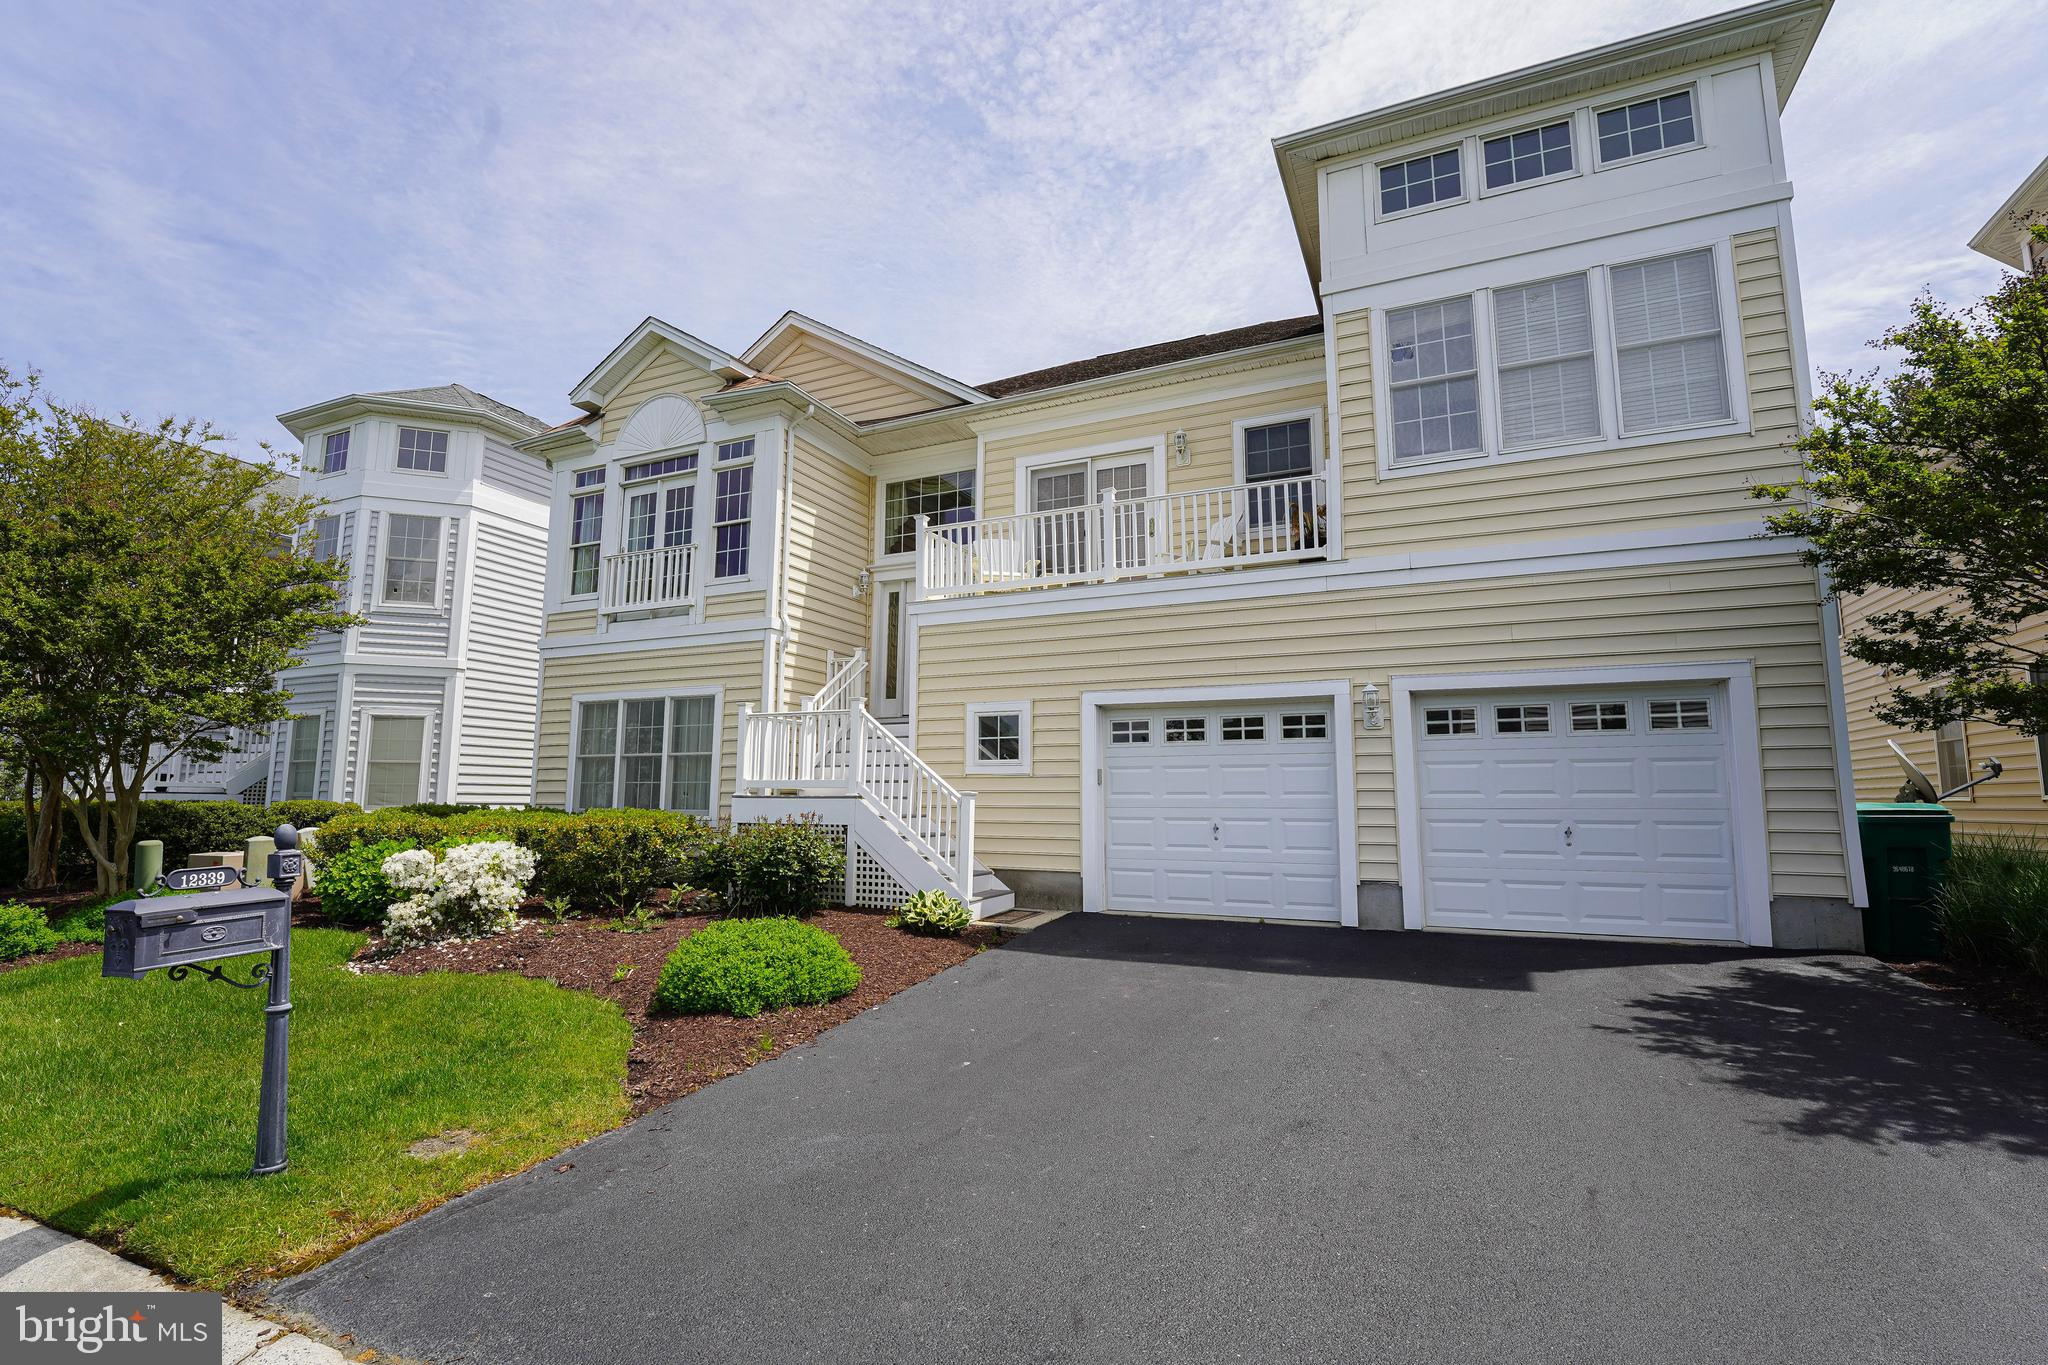 Check out this amazing home located in the luxurious Toll Brothers Community.  With a stunning water view, this former model comes fully furnished with all your needs. With a short drive to Ocean City, this home is the perfect getaway. Enjoy looking out over the waters from the upper deck, entertain guests with the downstairs pool room, or engage in all the amenities the clubhouse has to offer. This is the perfect summer home or place to retire!  Call and schedule your private tour today!